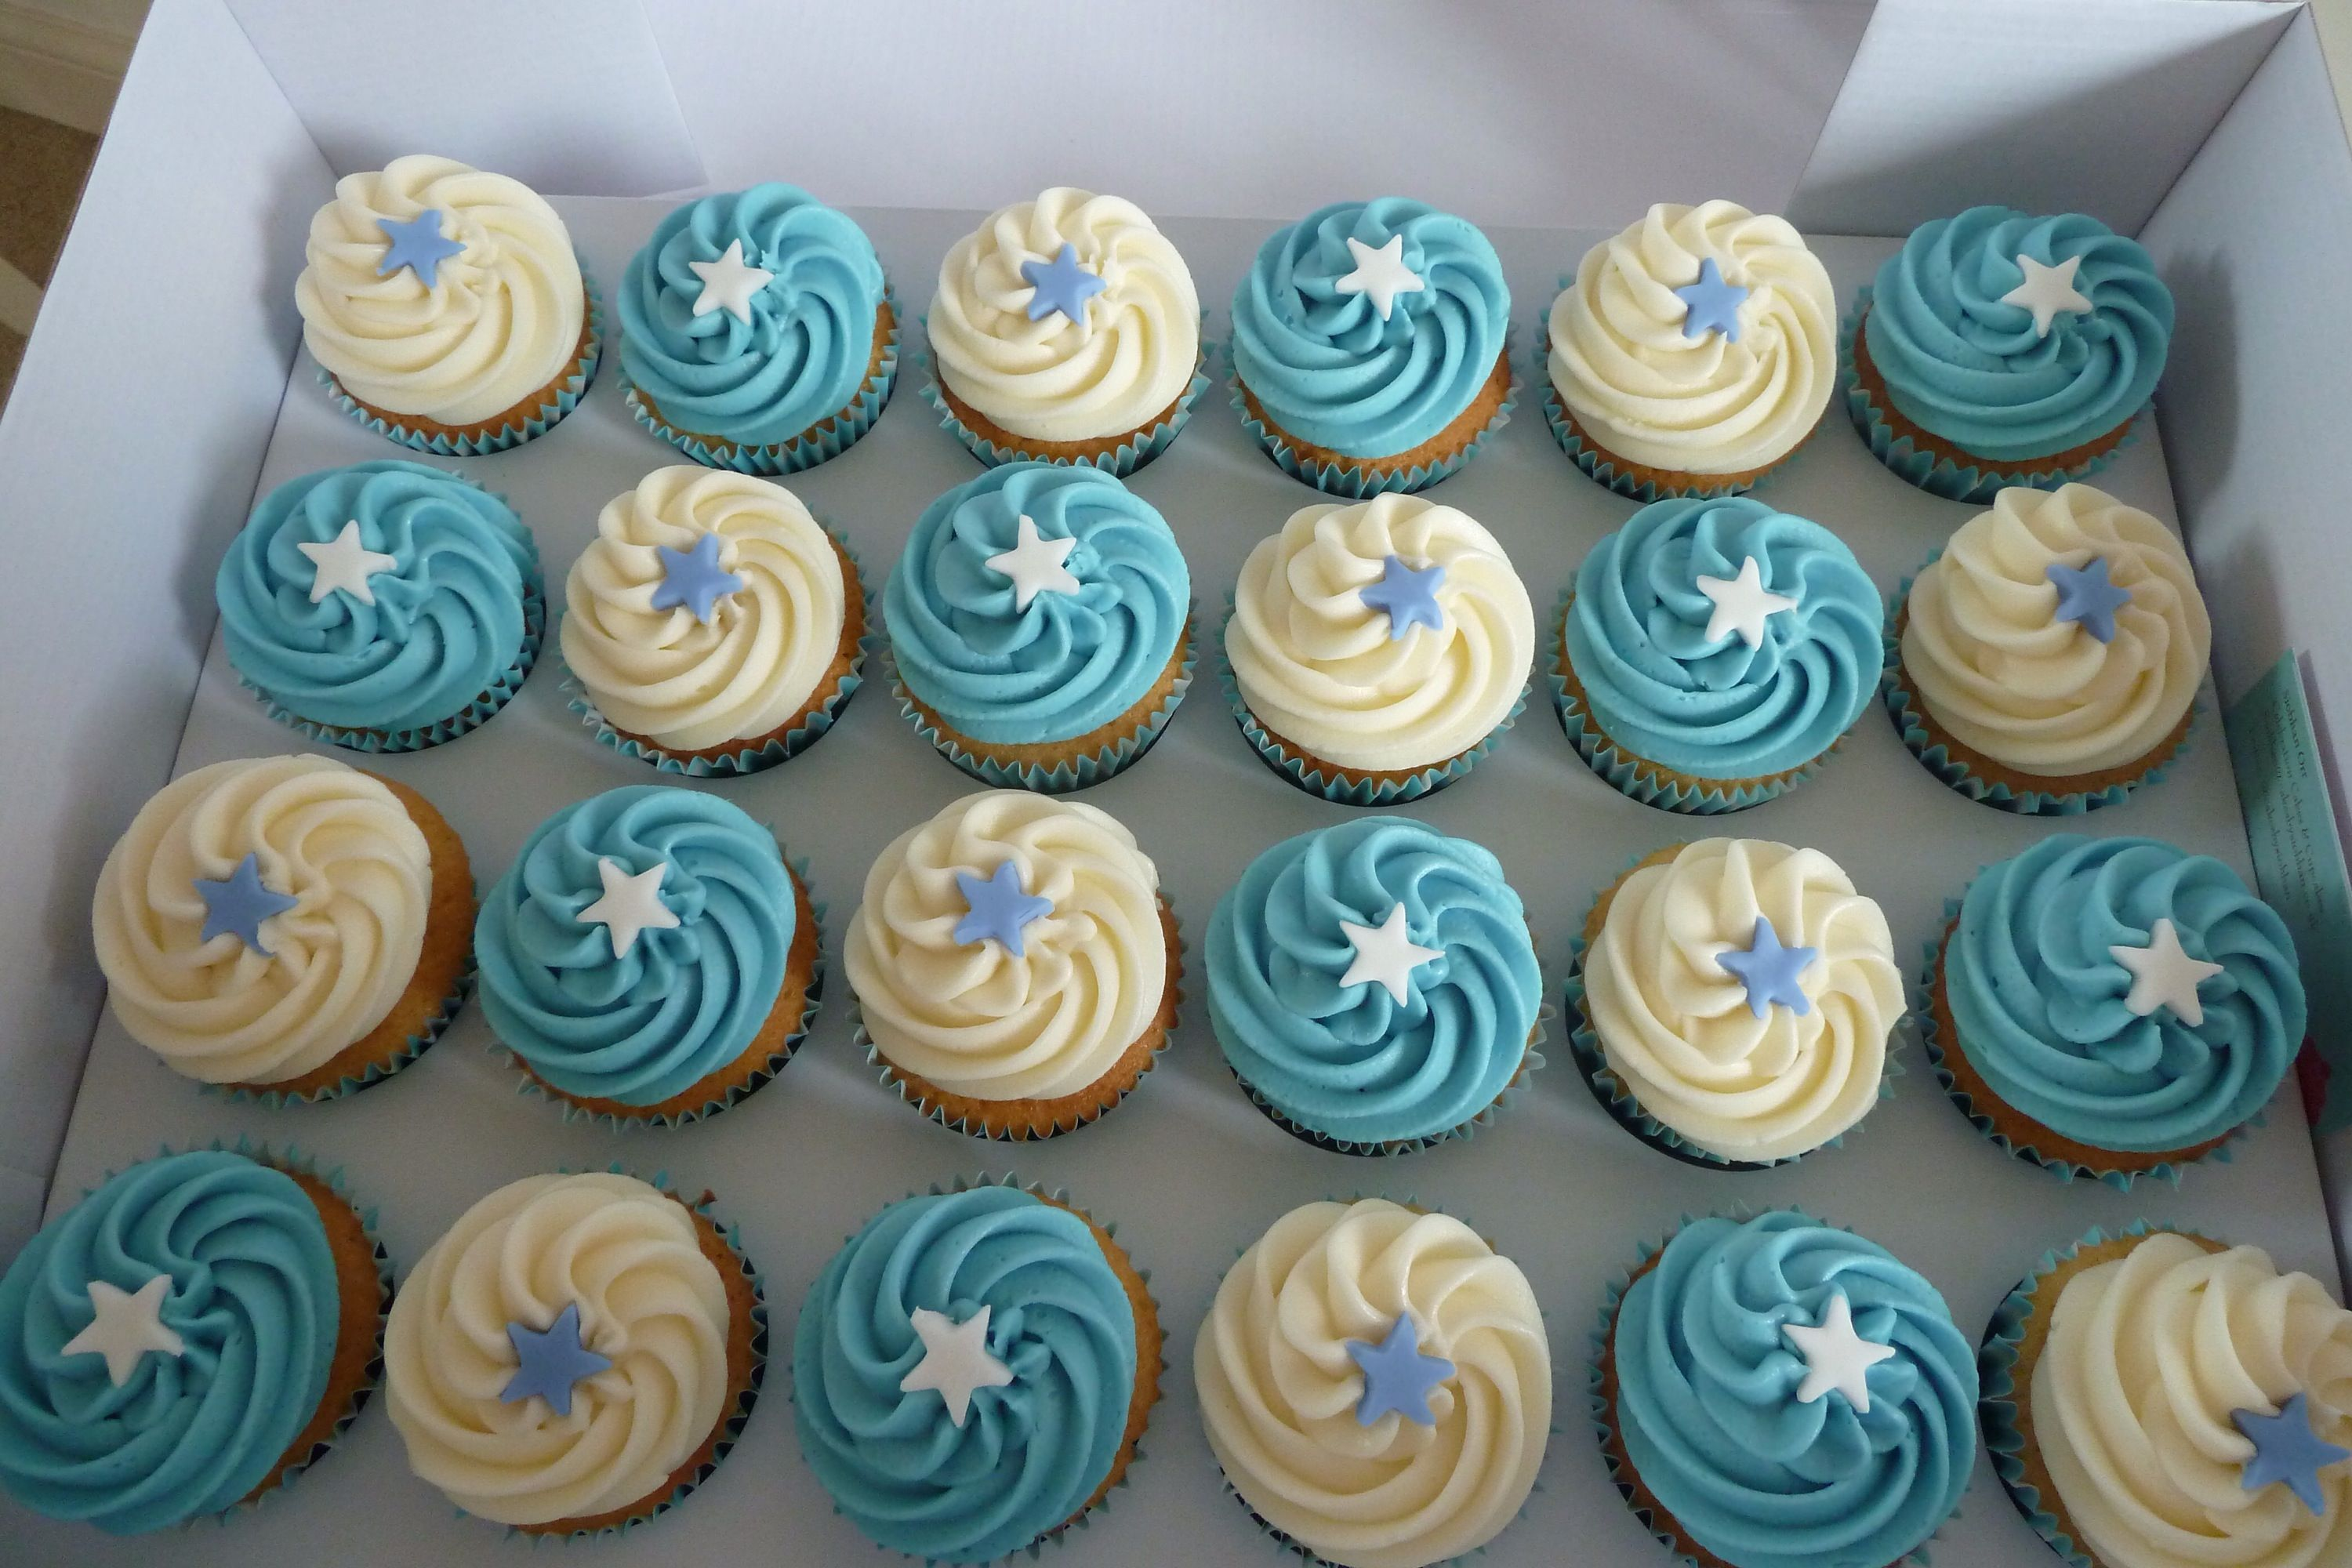 Share Tweet Pin Mail This Two Tiered Blue And White